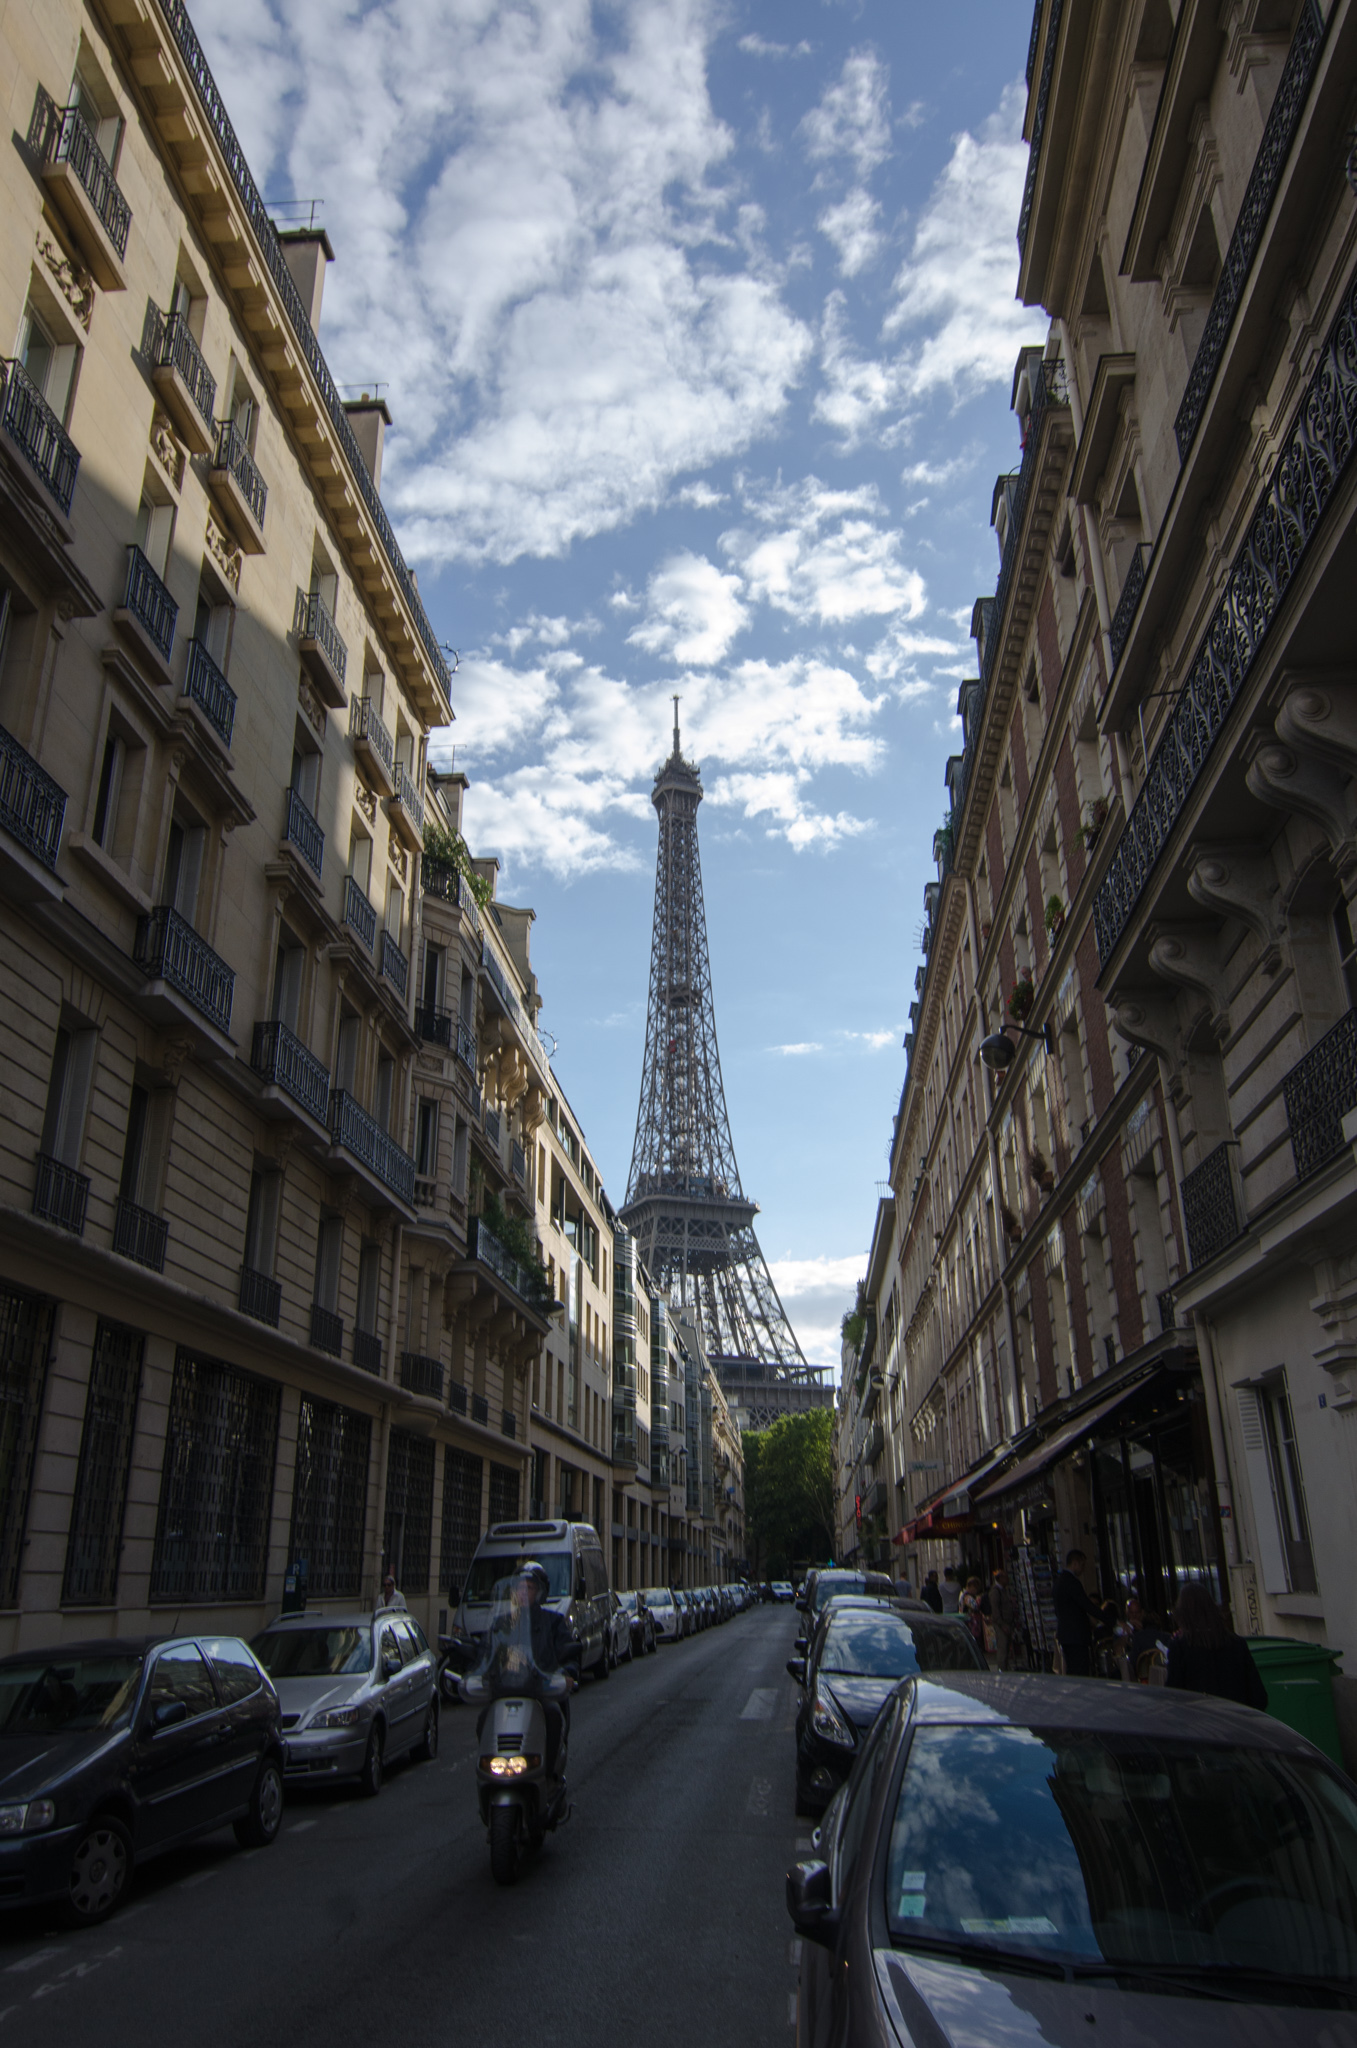 2015-07-29 - Jamritha Honeymoon - 003 - Eiffel Tower - 037